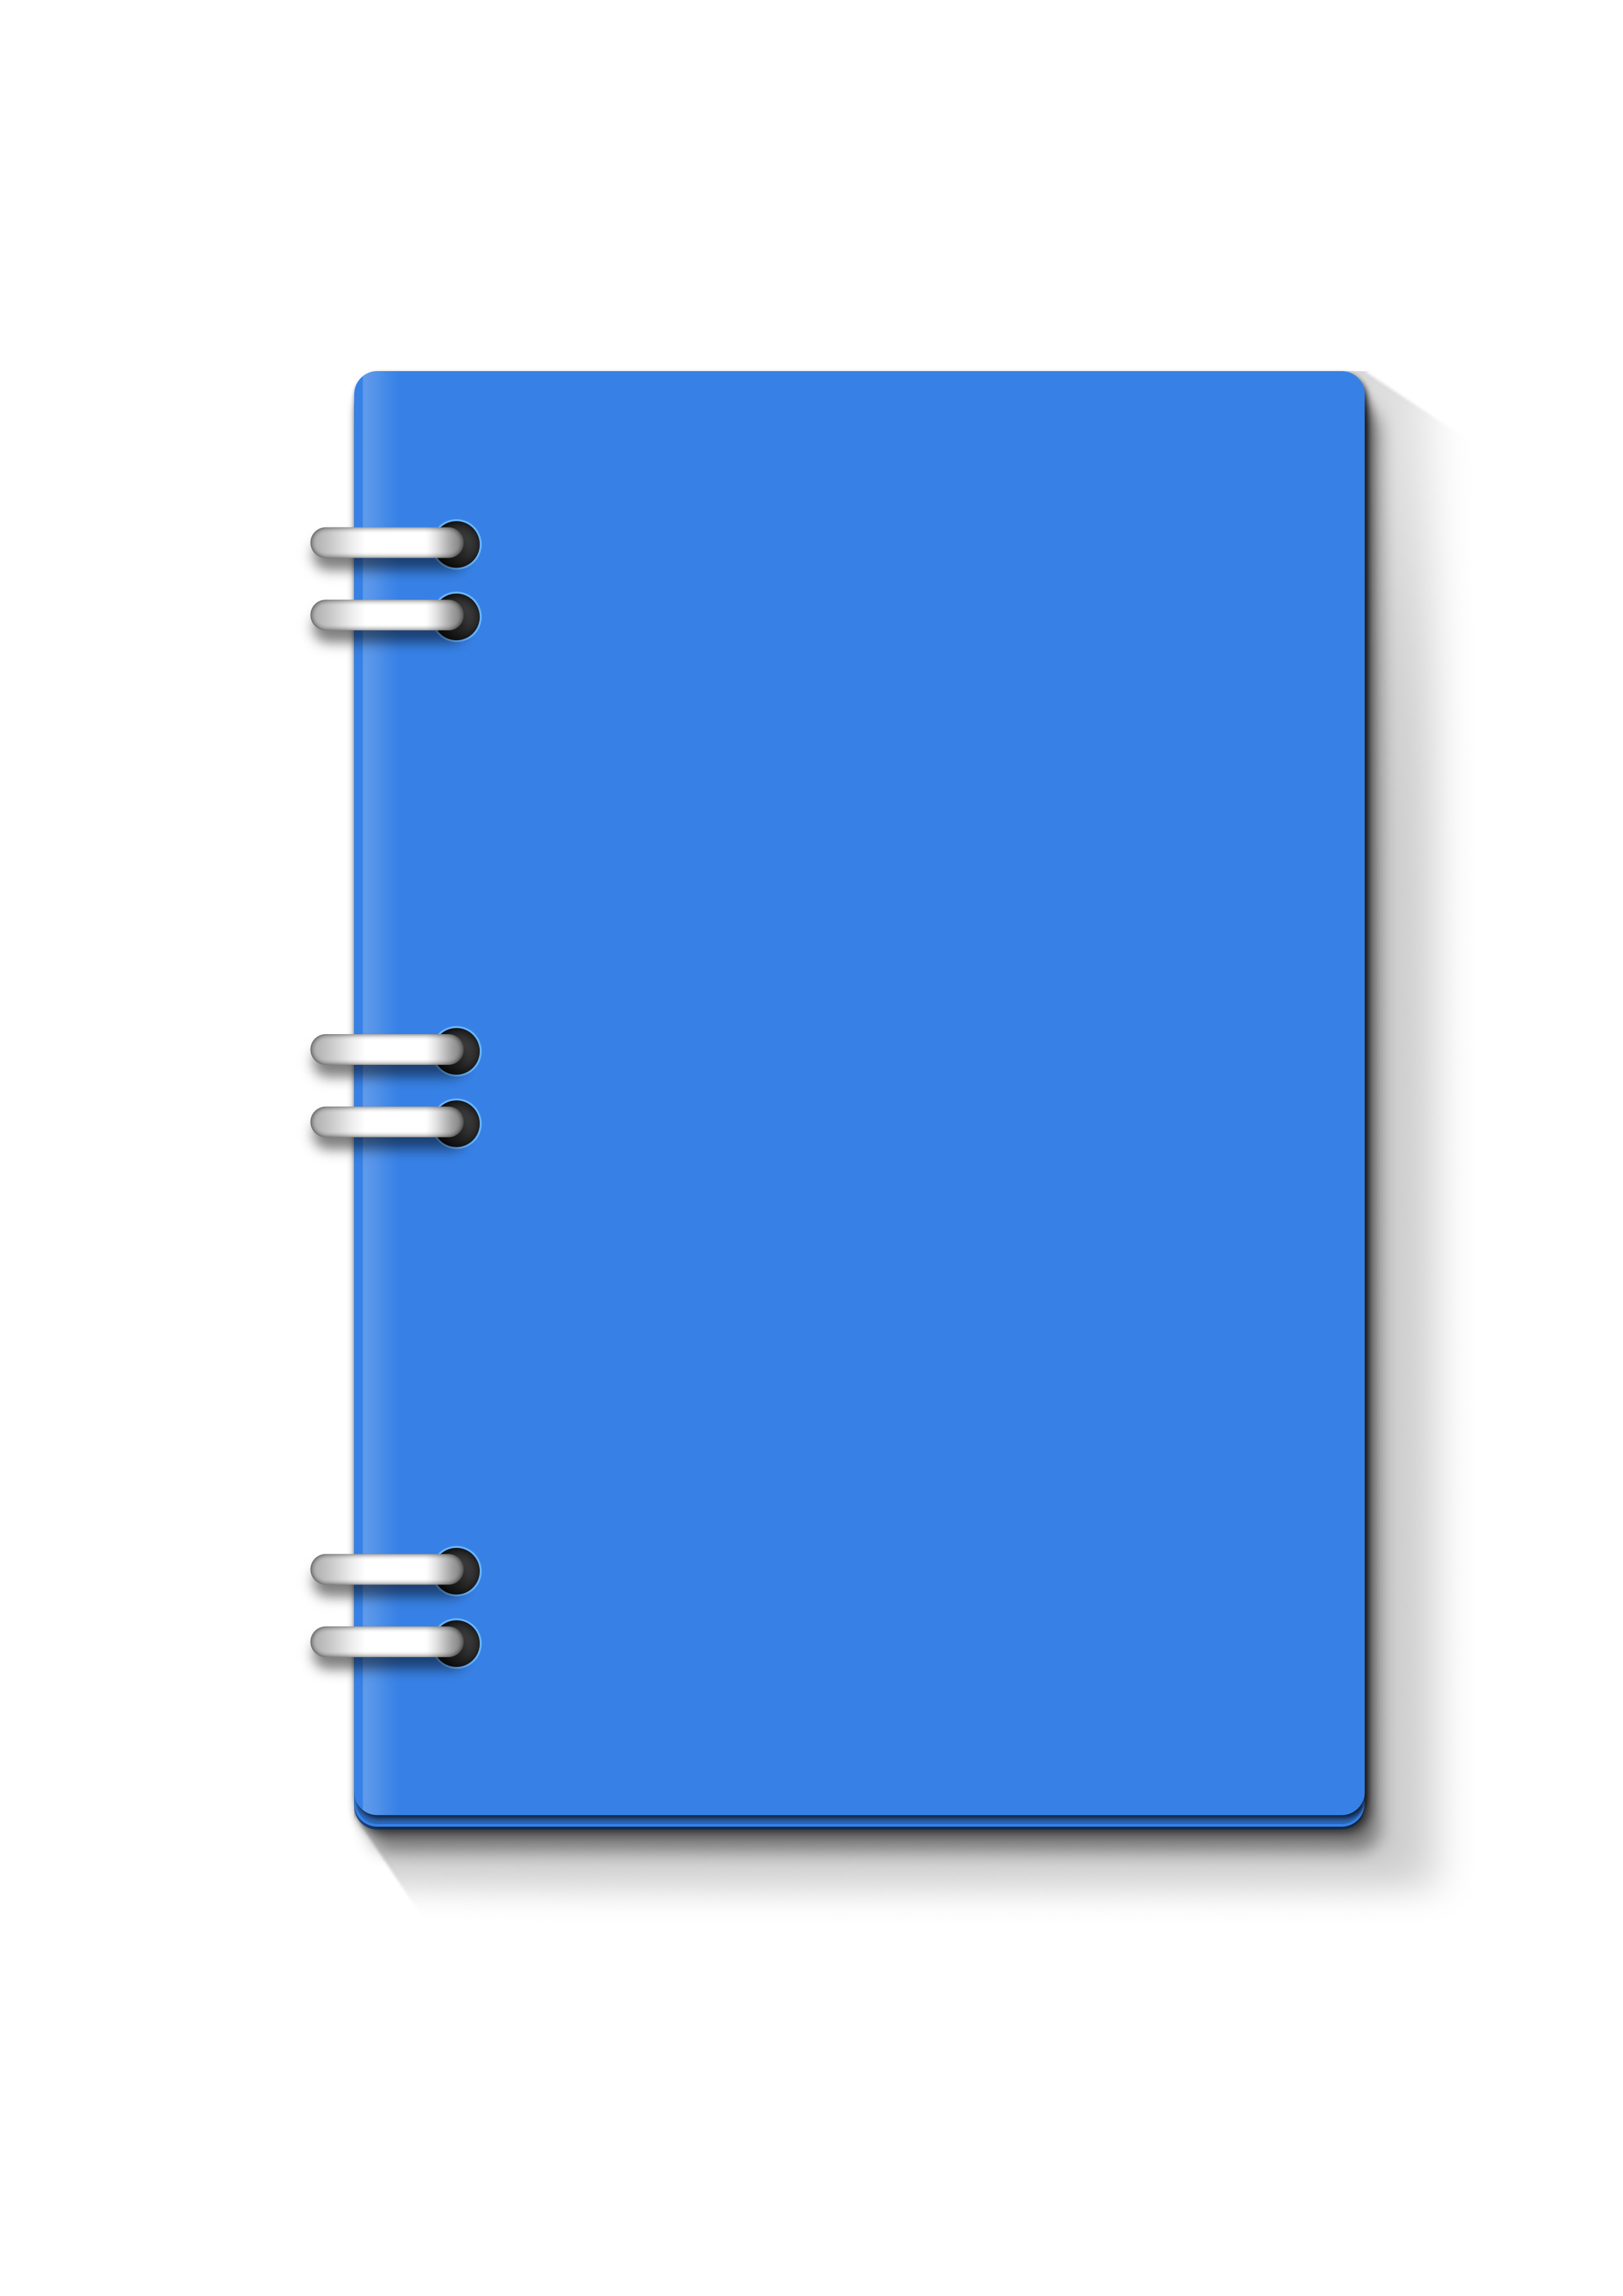 Notepad transparent png. Notebook exercise book this